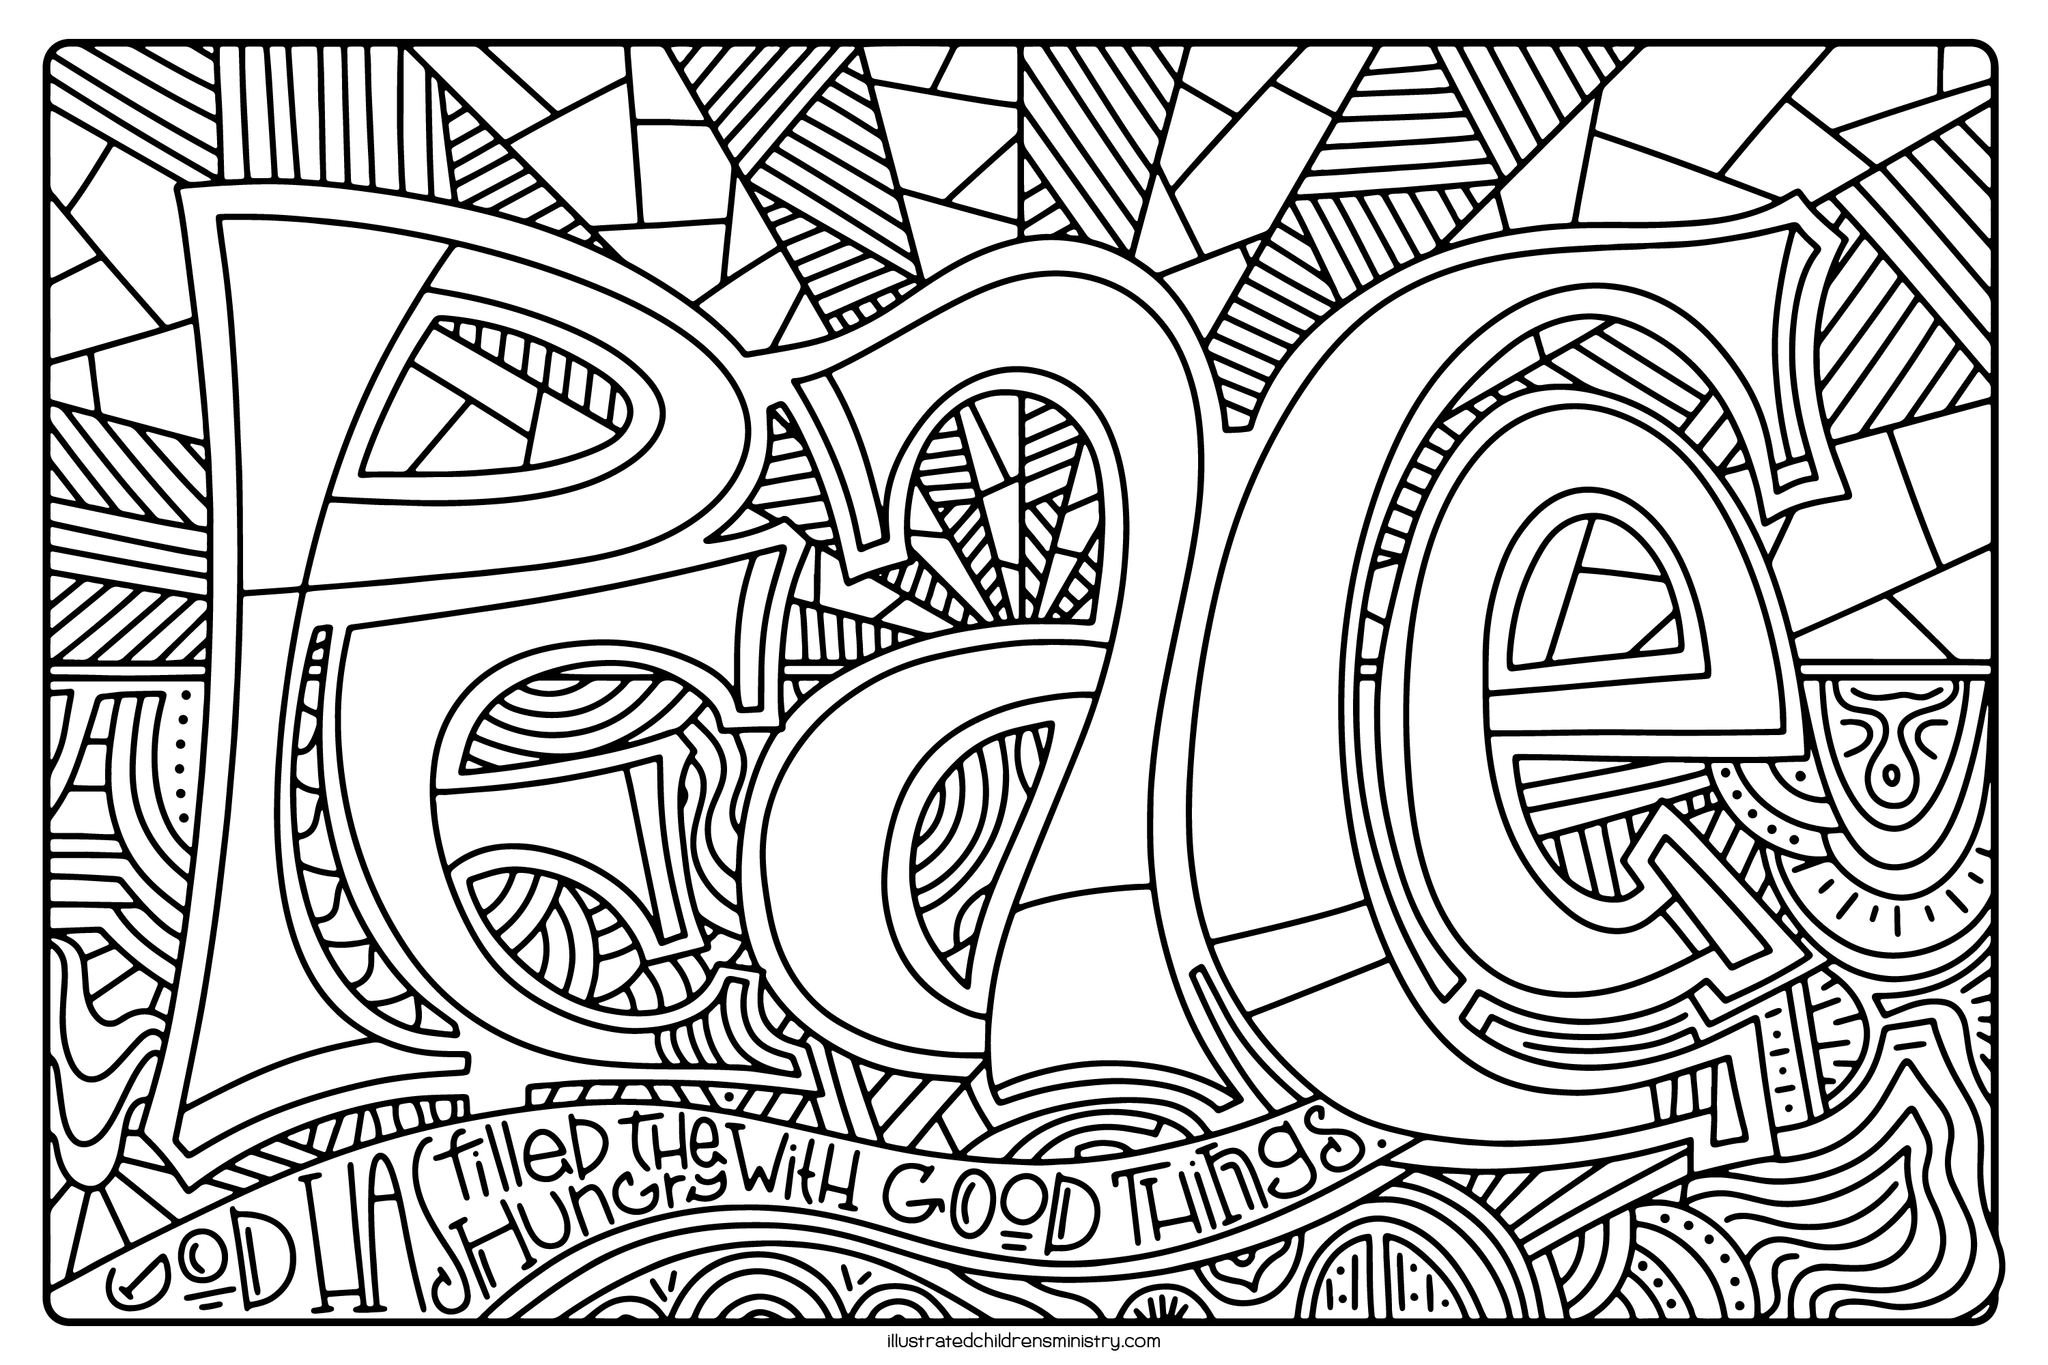 Mary's Song Coloring Page - Peace